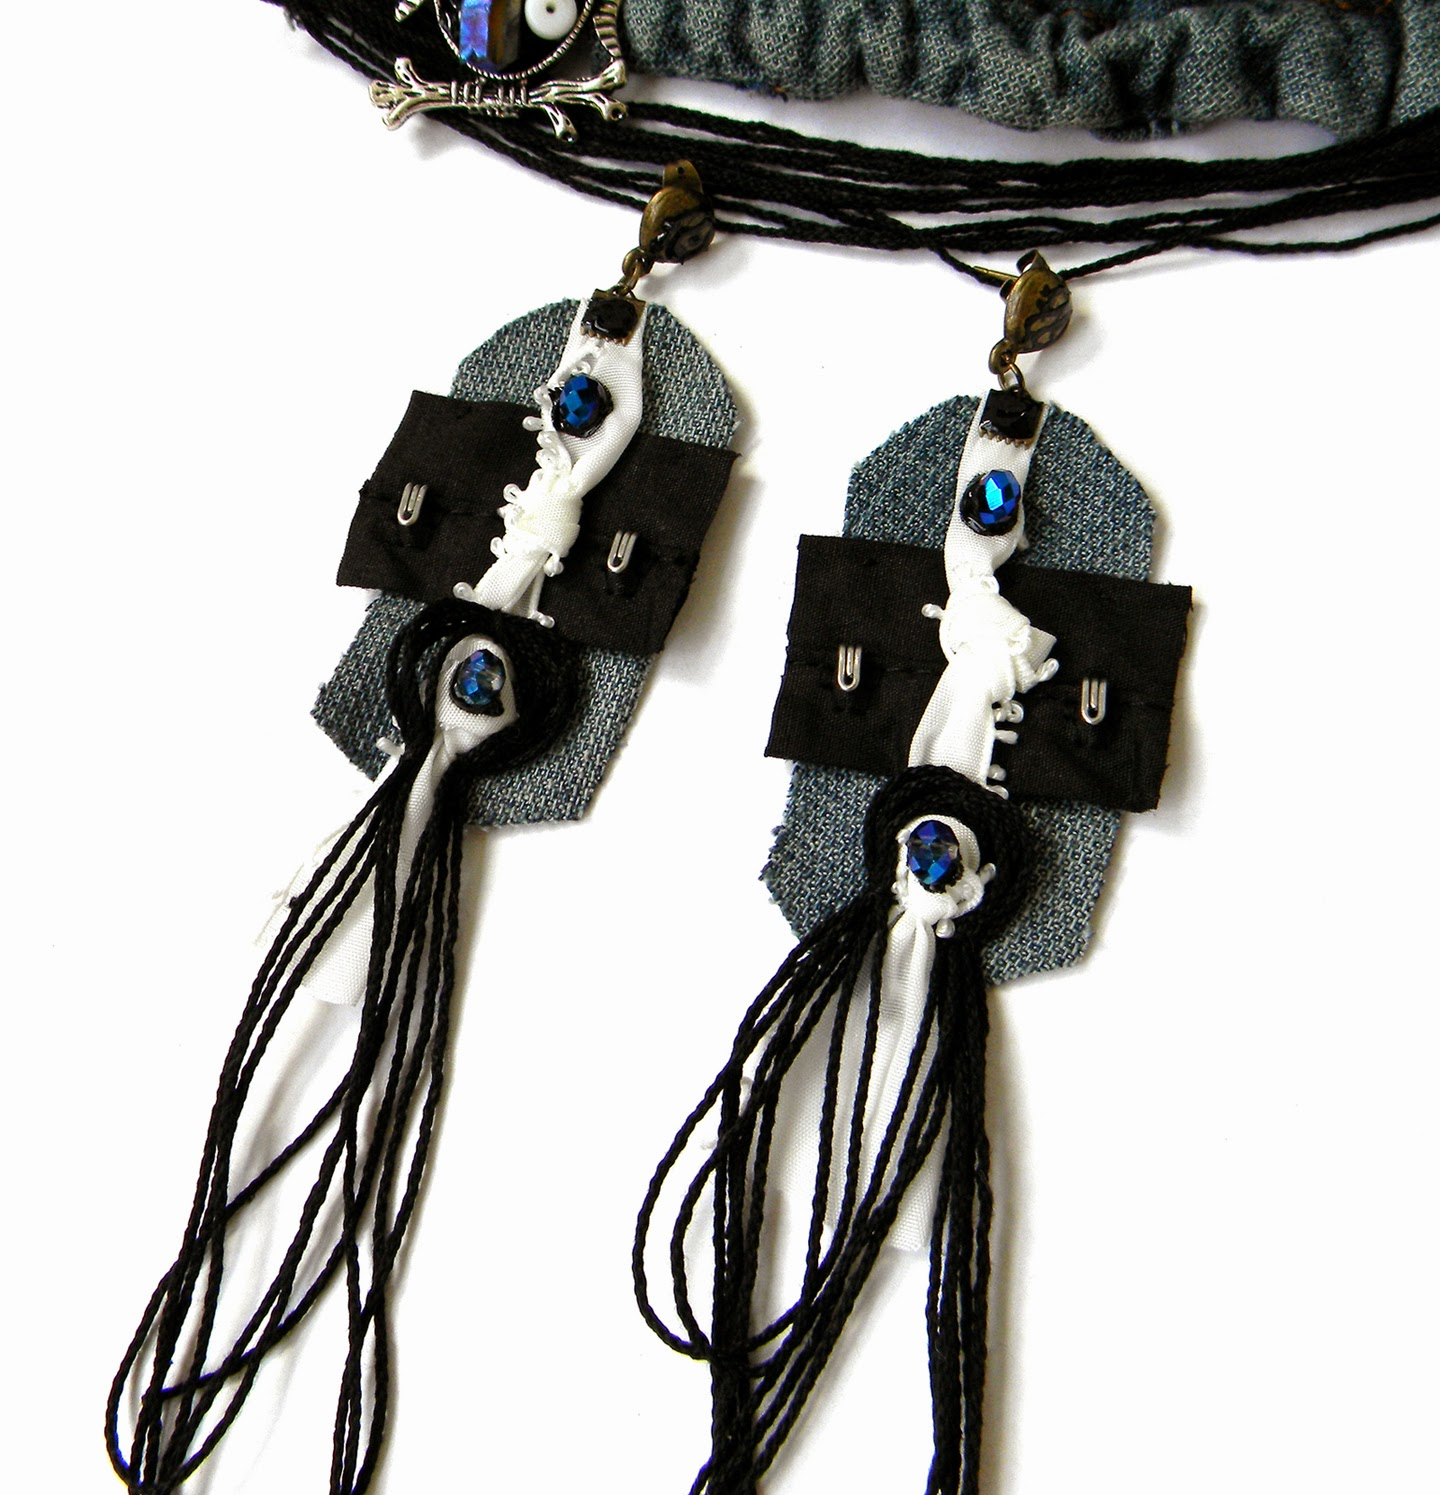 Long Textile Earrings with Black Strings and Faceted Crystal Beads